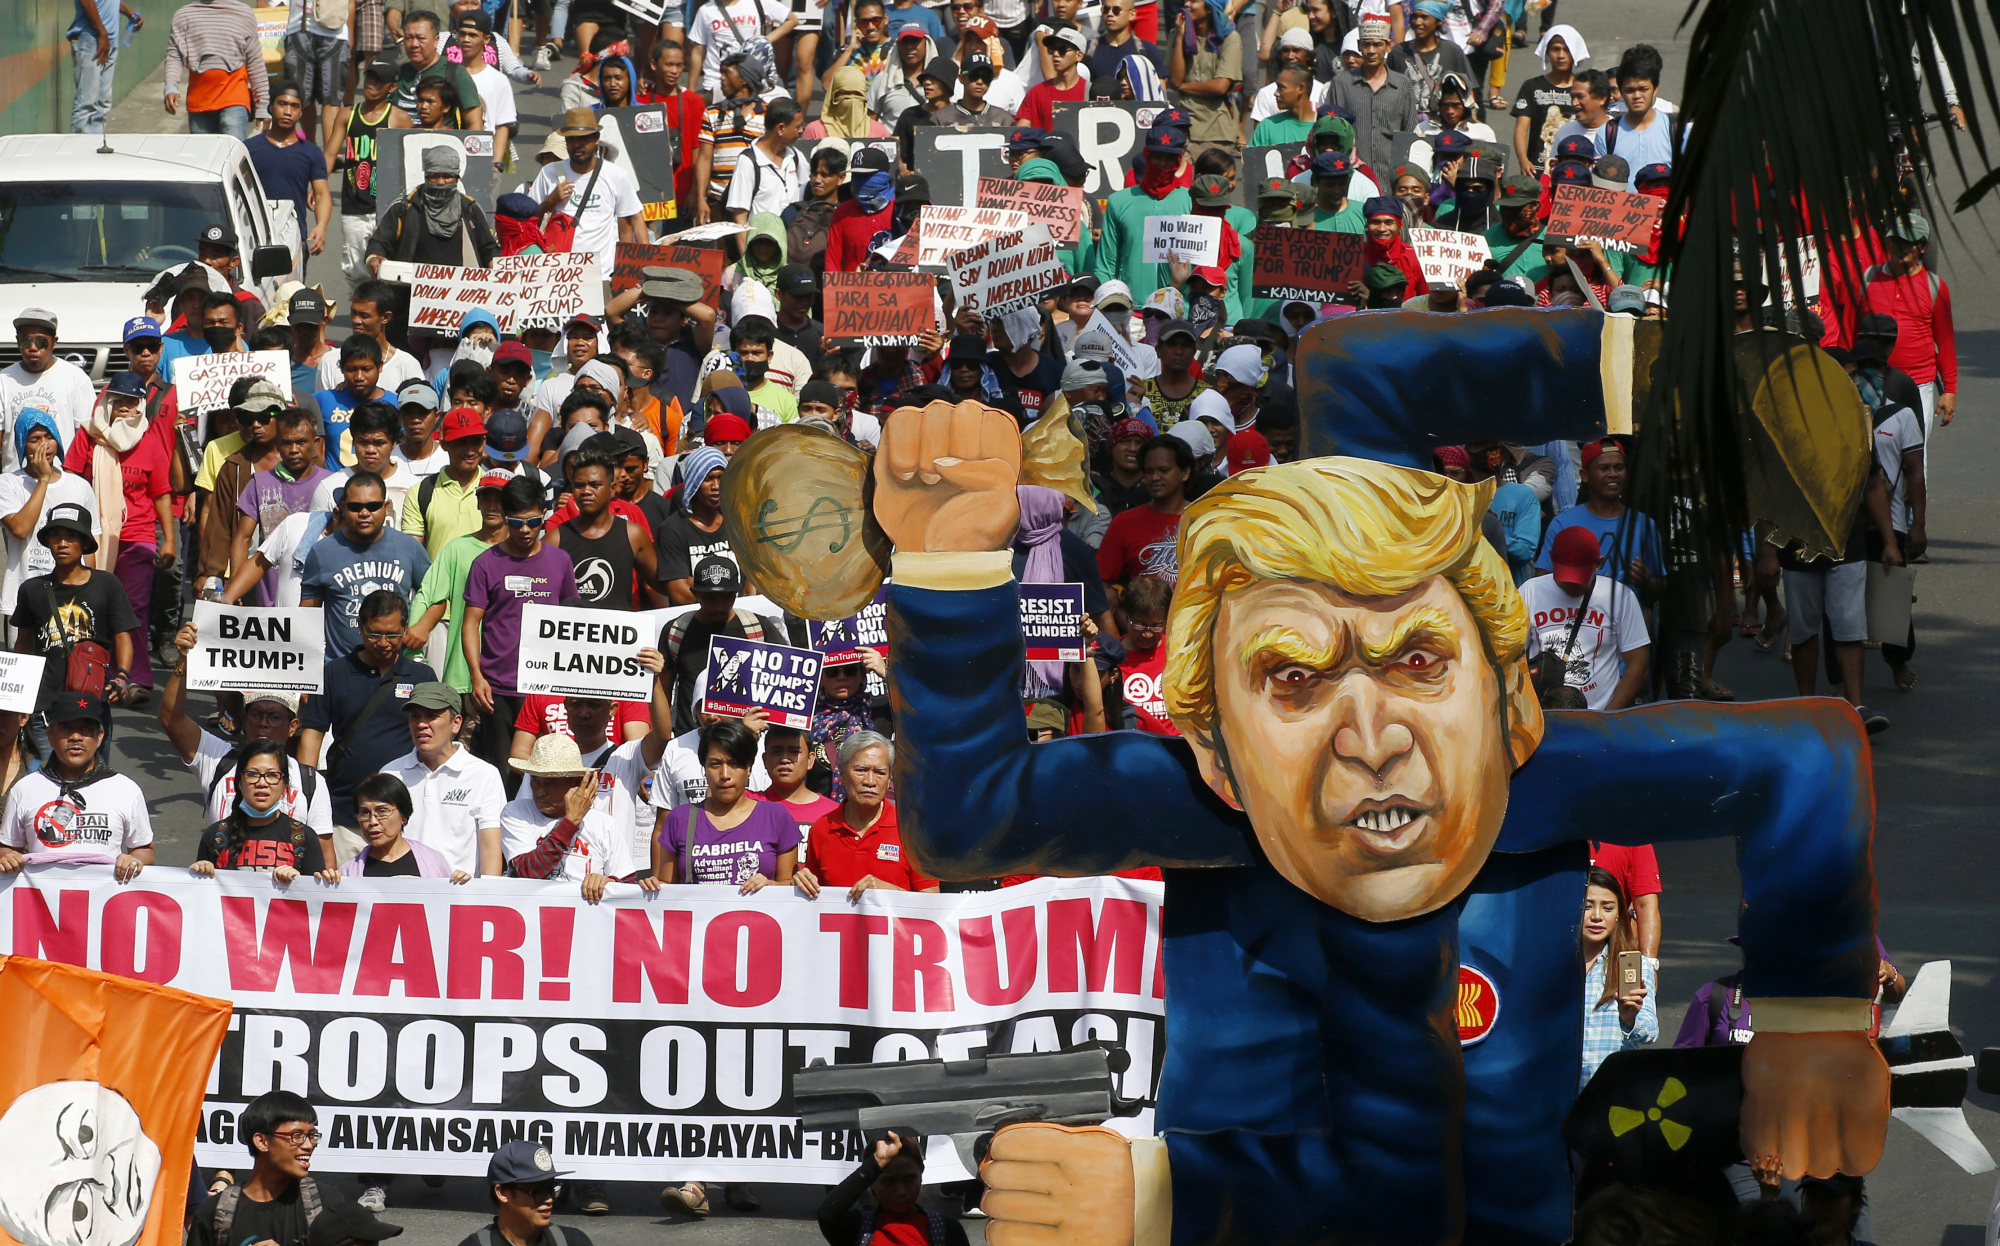 Protesters march in a rally against the visit of U.S. President Donald Trump on Monday in Manila, where ASEAN leaders and their dialogue partners are meeting for two days to discuss issues facing the region, including the South China Sea.   AP